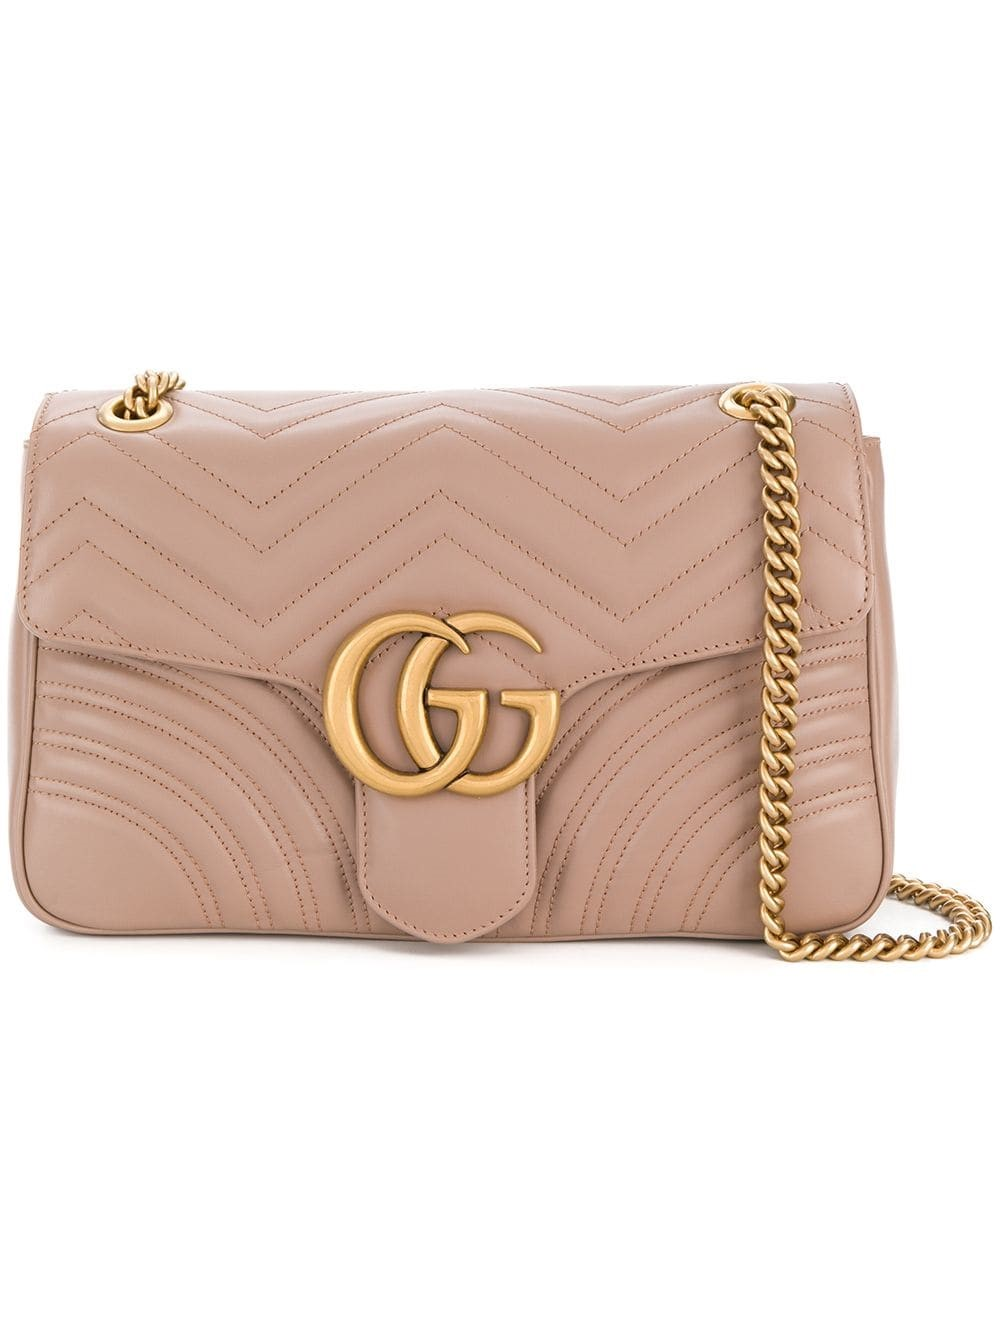 3be6ee367578b8 gucci GG MARMONT BAG available on montiboutique.com - 26174